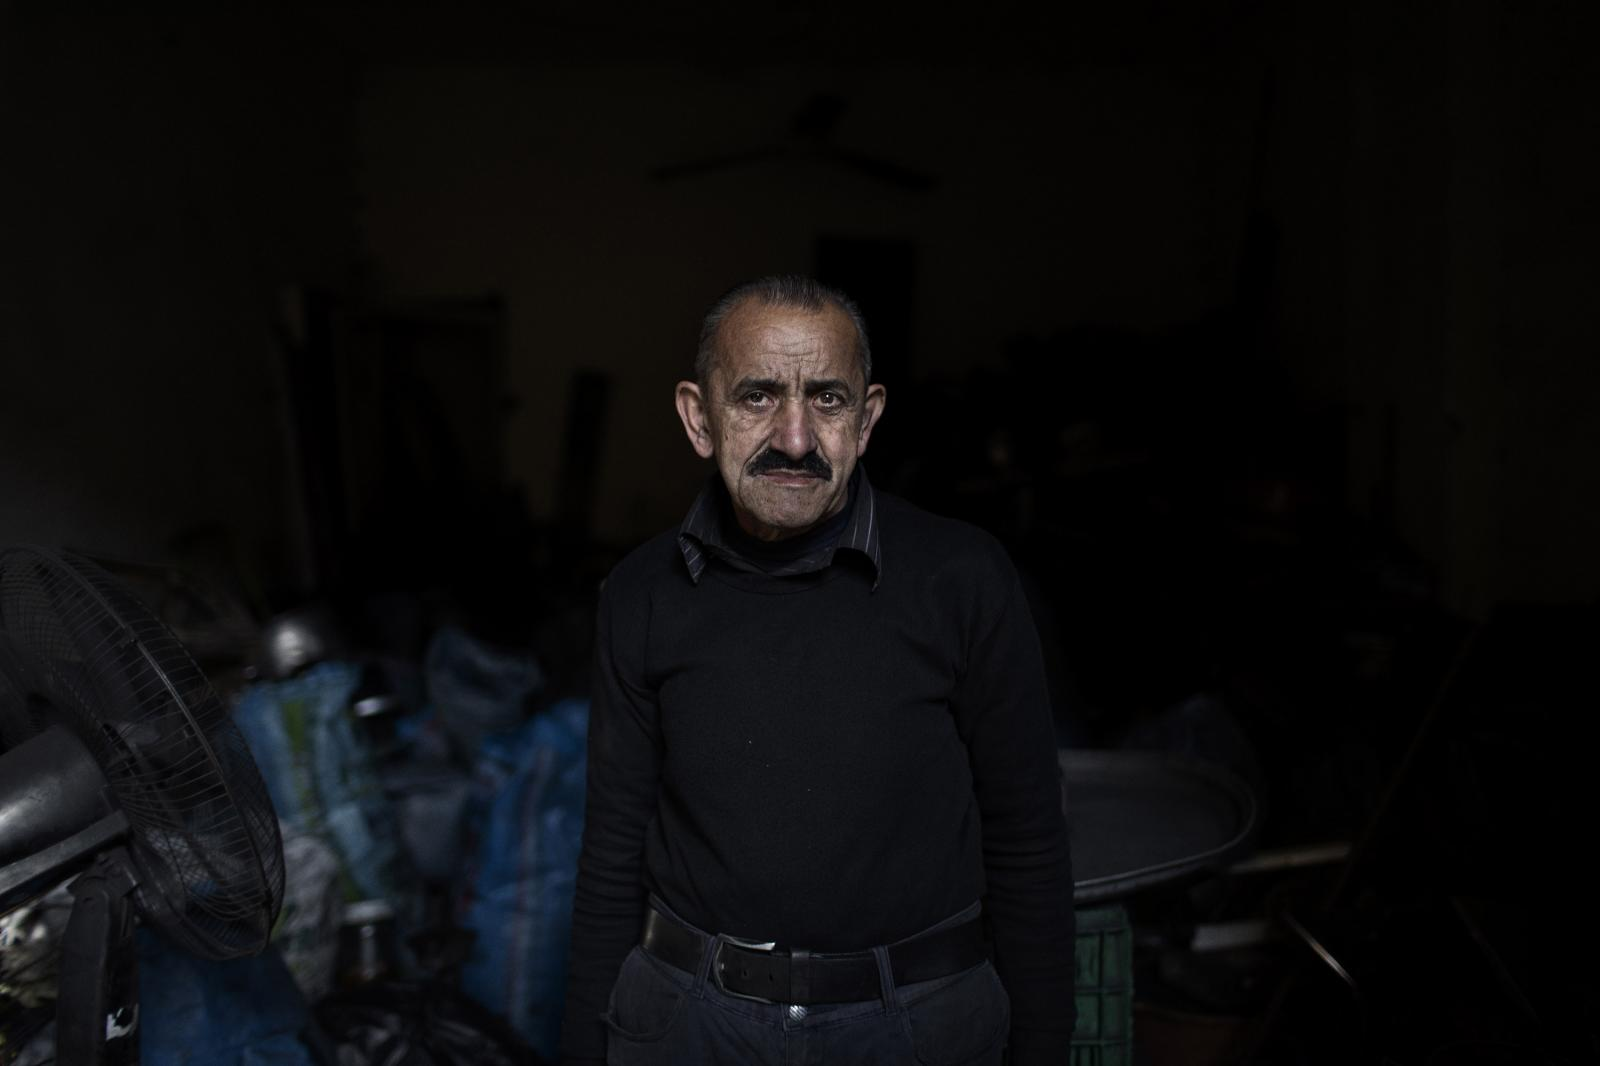 Abdel Kader Mohammed: I start work at 7 am and I don't leave until around midnight. I barely make enough money to pay rent. The market is weak. It's always been bad but it's gotten worse. Al-Mina in Tripoli, Lebanon. December 11th, 2019. Diego Ibarra Sánchez for CNN